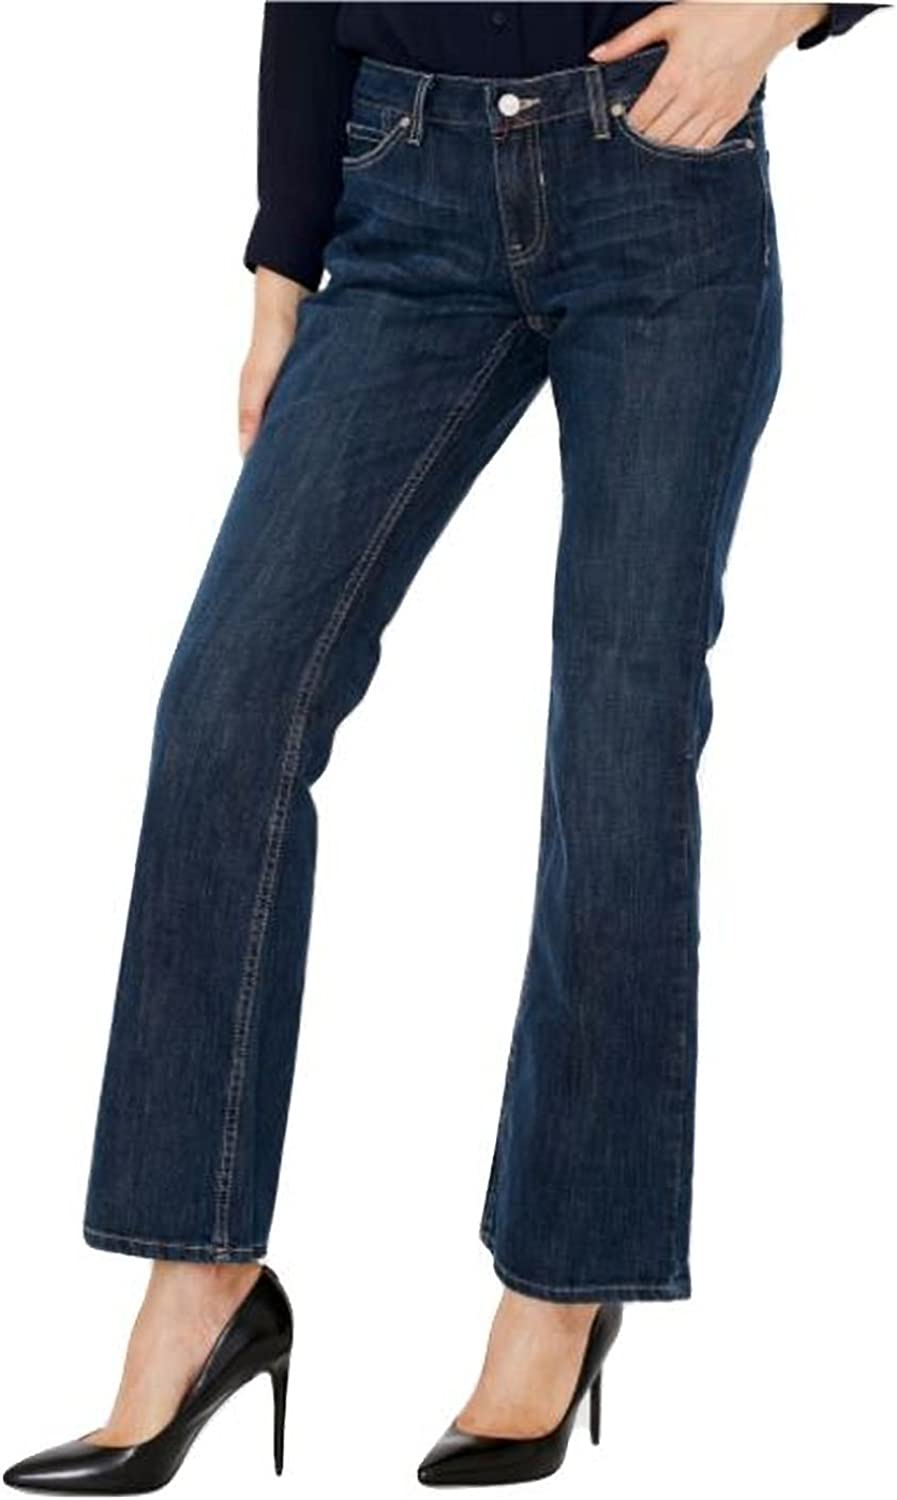 Canyon River bluees Women's Slim Boot Cut bluee Jeans  Light Distressed Stretch, Mid Rise, Fitted Cut